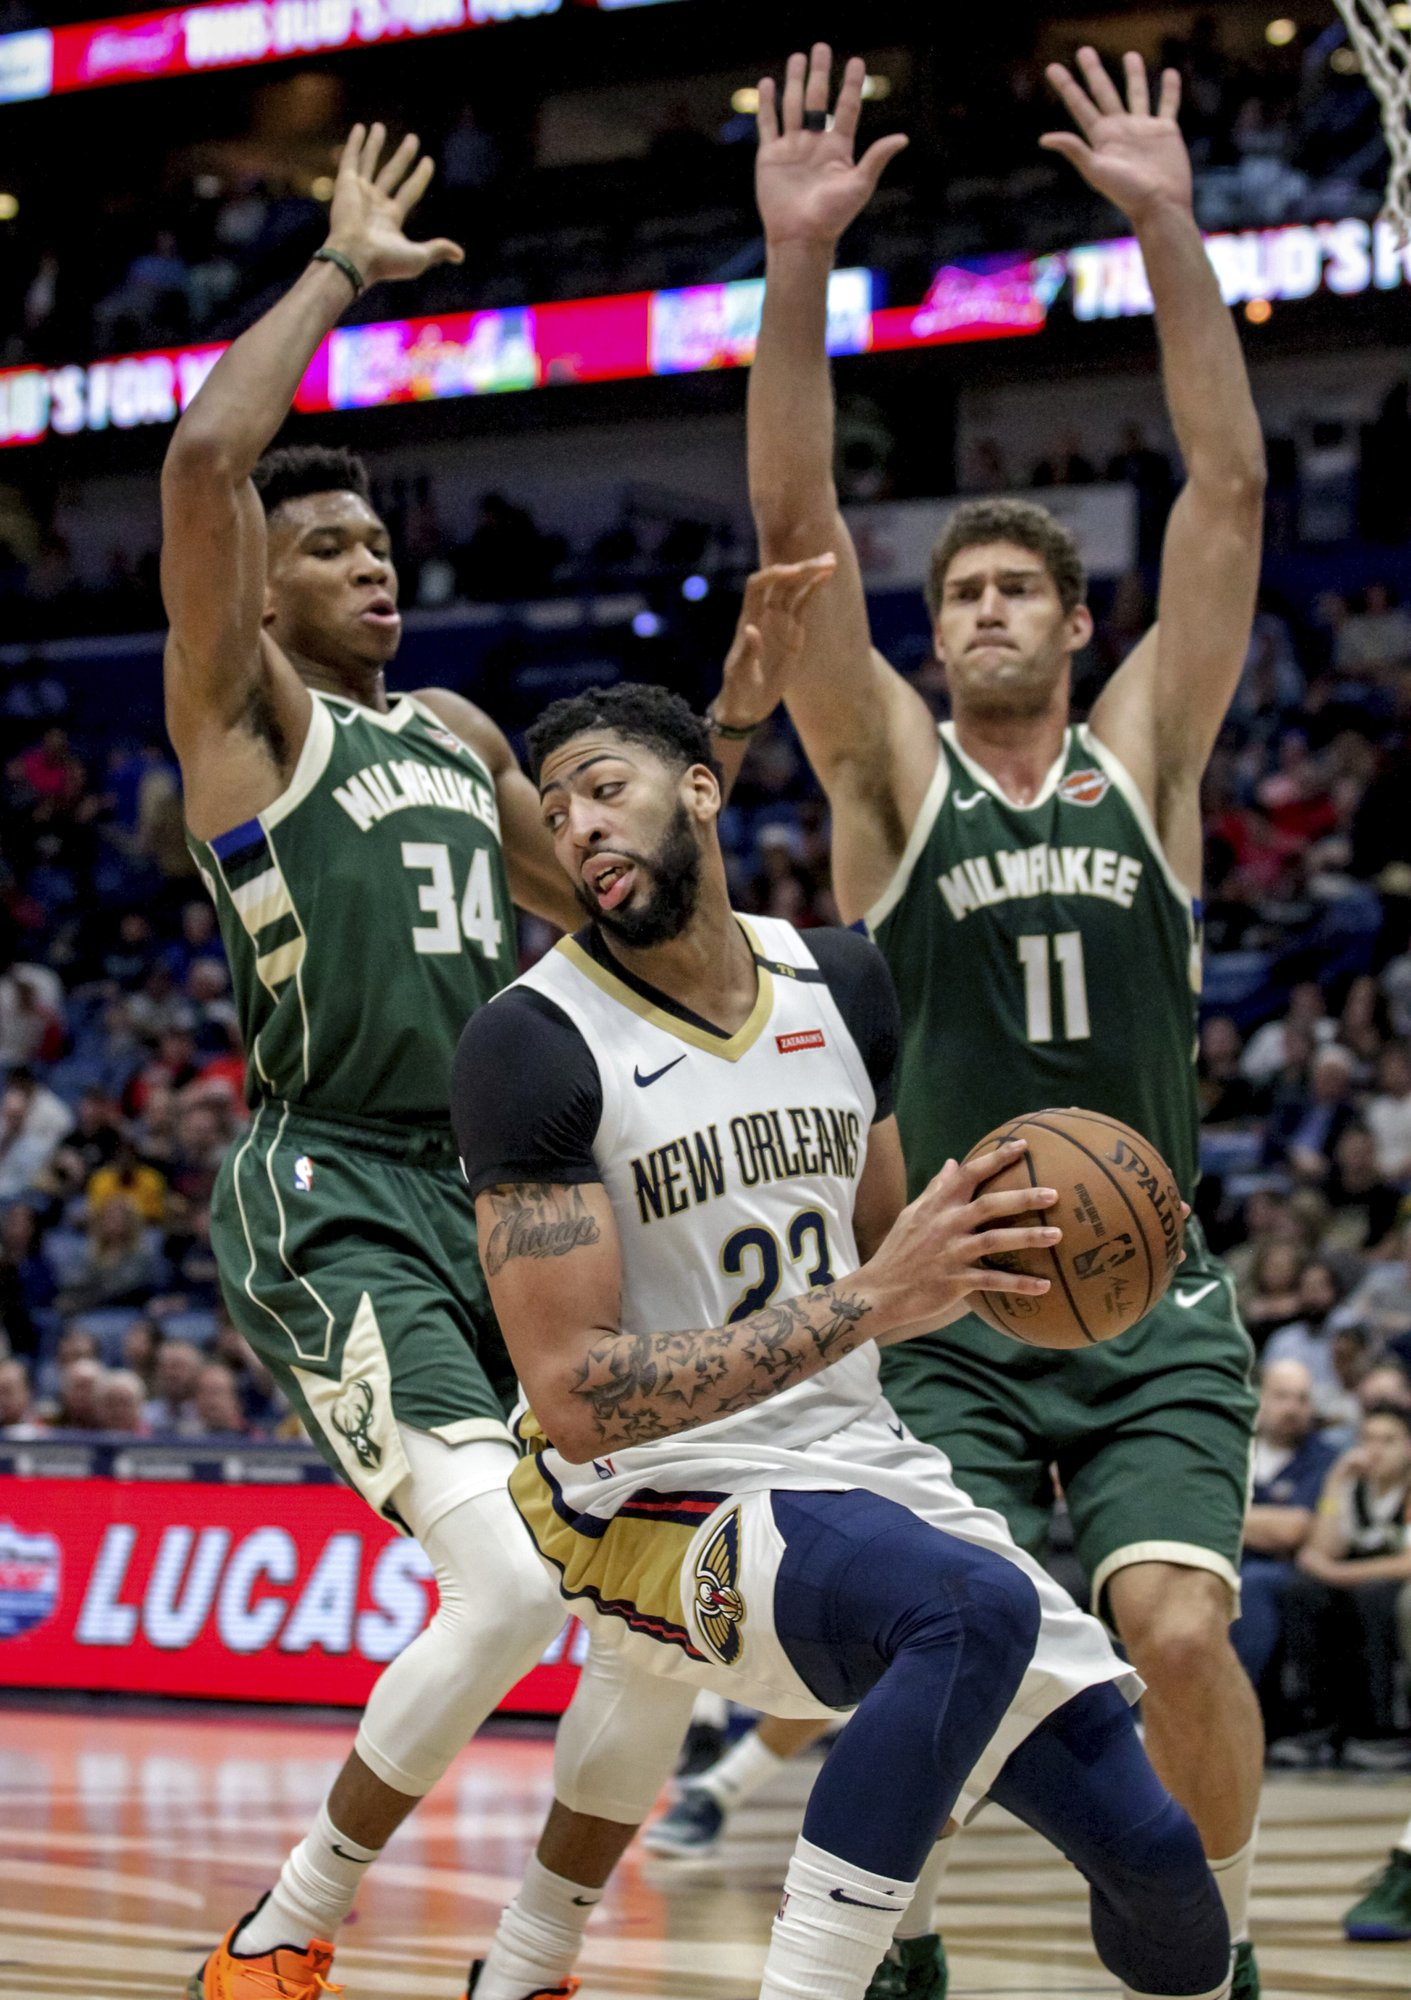 Bucks used big third quarter to pull away and beat Pelicans